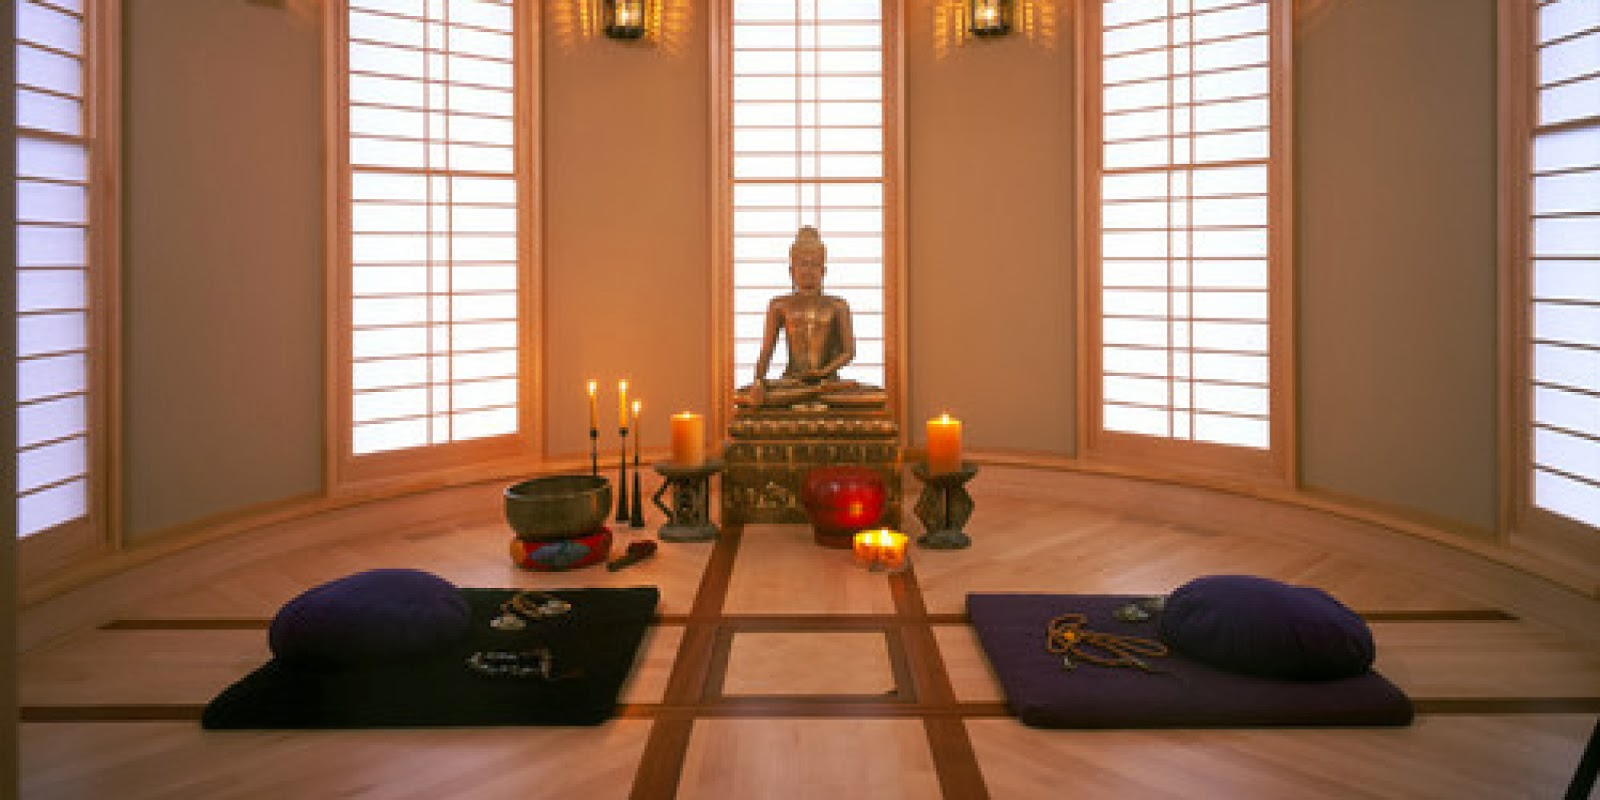 Yoga Room Design Ideas New Design Ideas